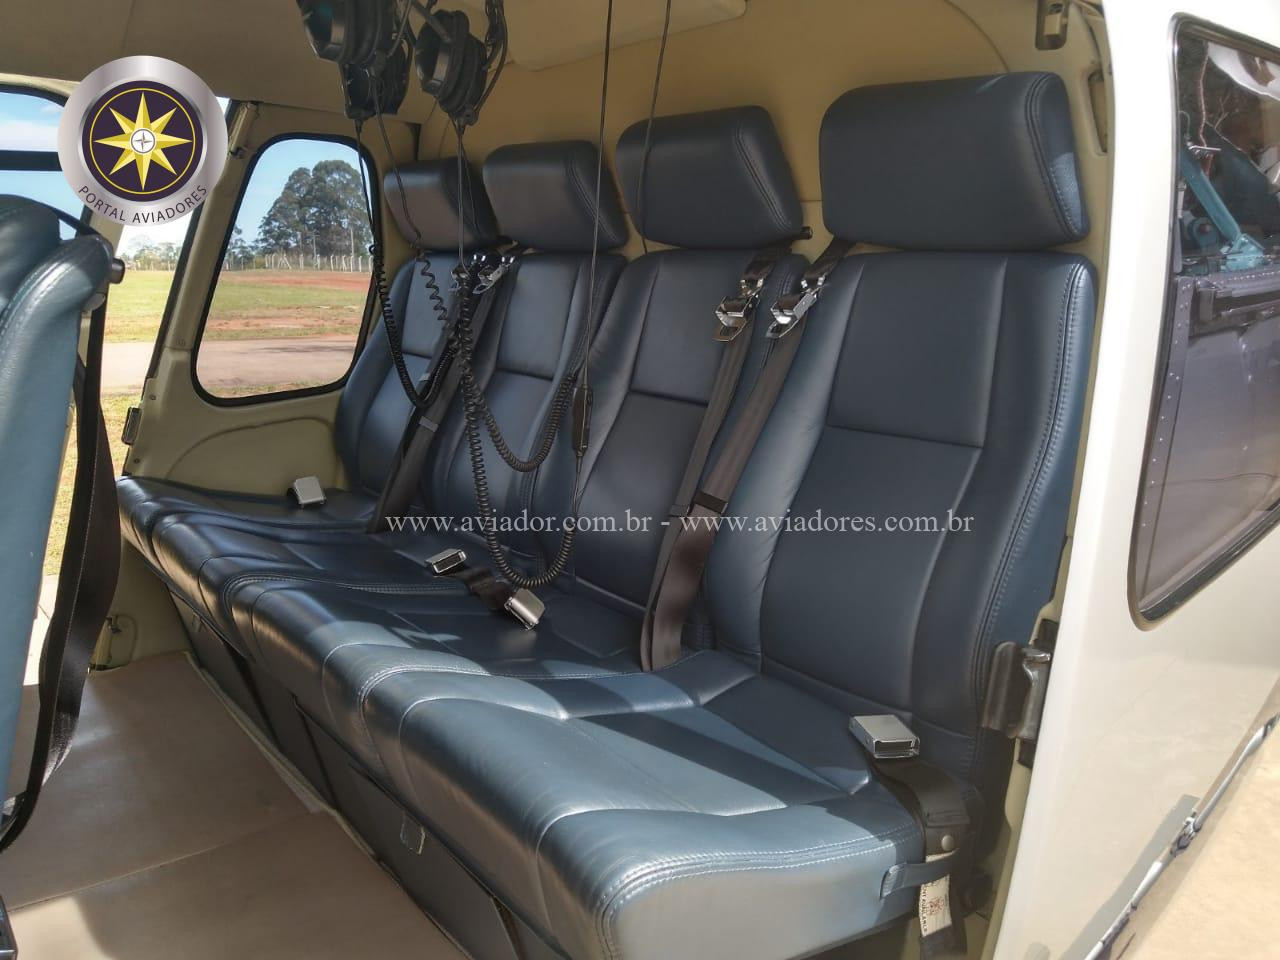 EUROCOPTER AS350 B2 ESQUILO 1998